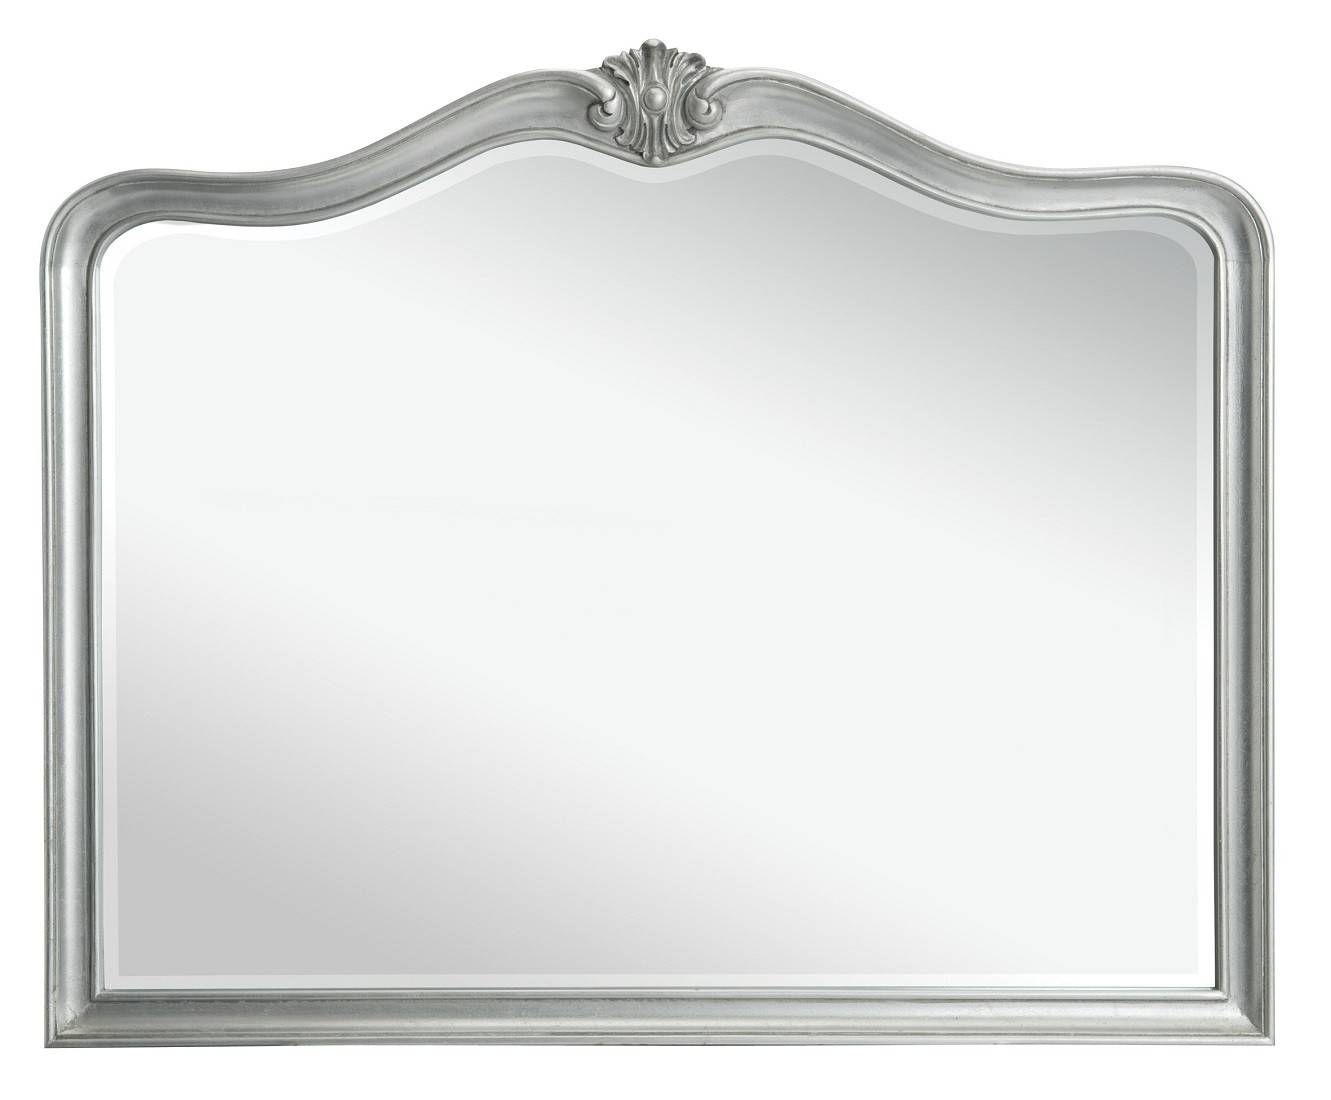 Louis French Silver Leaf Wall Mirror | Oak Furniture Uk within French Wall Mirrors (Image 14 of 25)